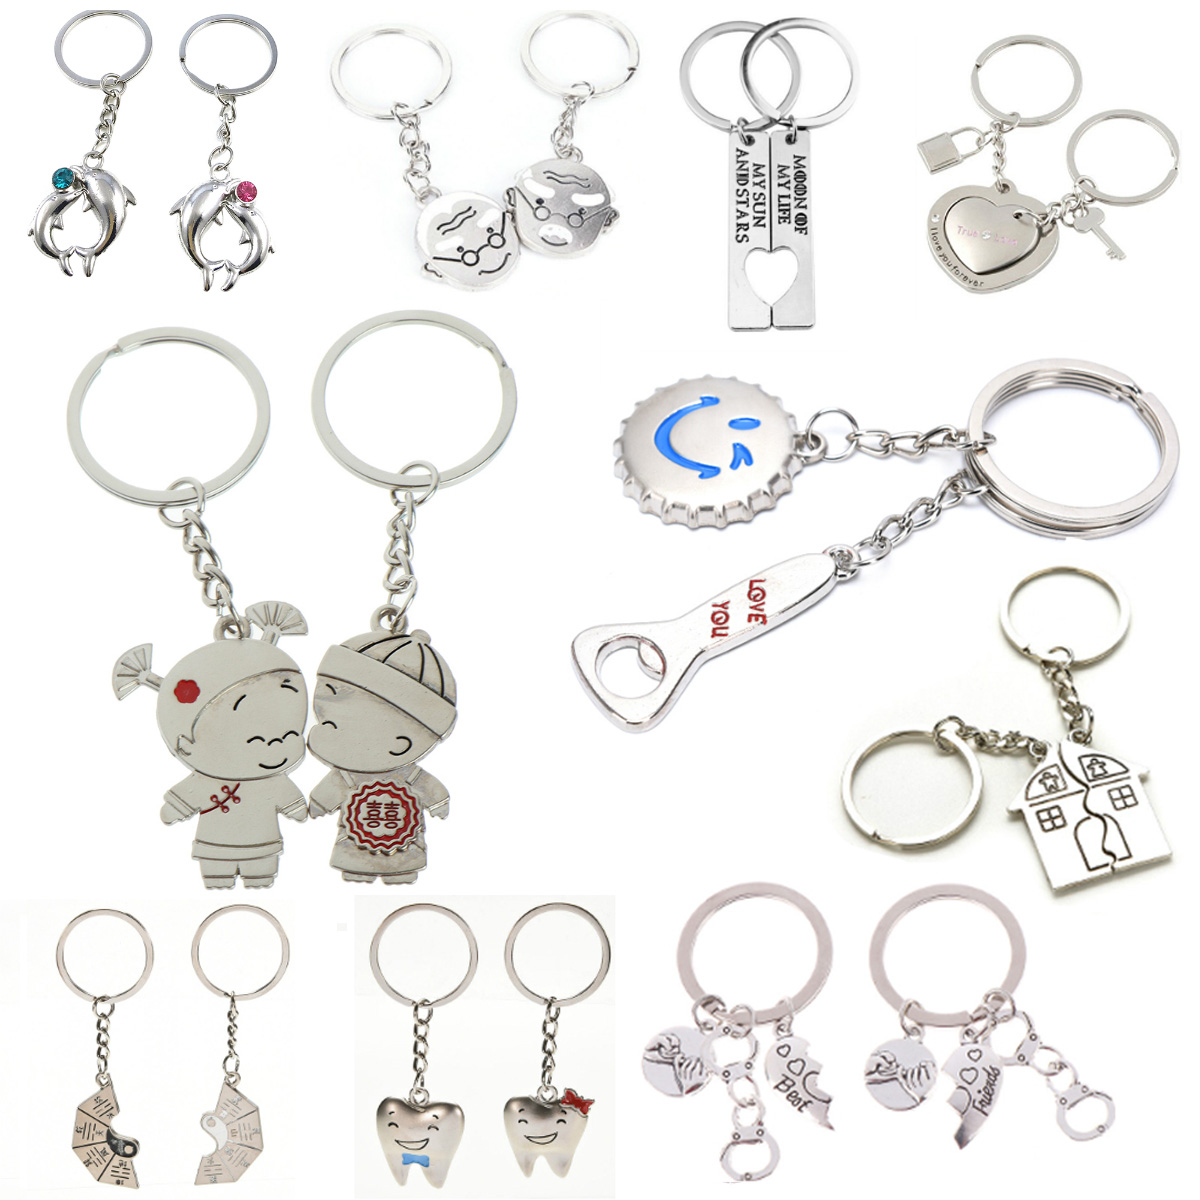 1 Pair Couple Keychains Bottle Beer Cap Couple Keychain Lovers BBF Cute Key Ring Holder Love Heart Best Friends Gift